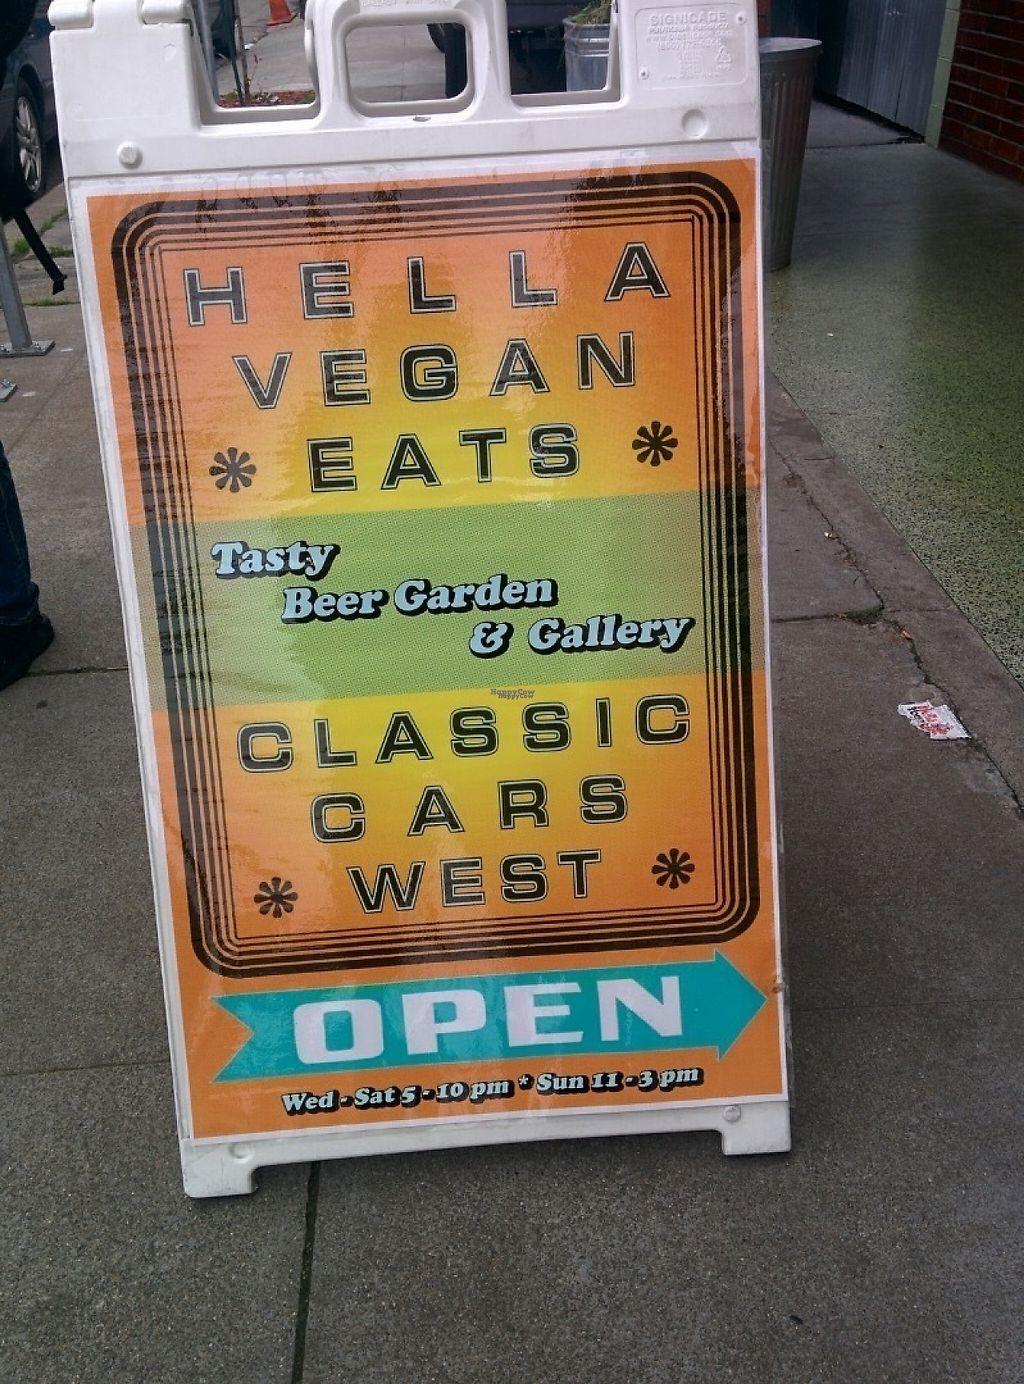 "Photo of Hella Vegan Eats  by <a href=""/members/profile/MizzB"">MizzB</a> <br/>Street sign <br/> December 1, 2016  - <a href='/contact/abuse/image/34528/196155'>Report</a>"